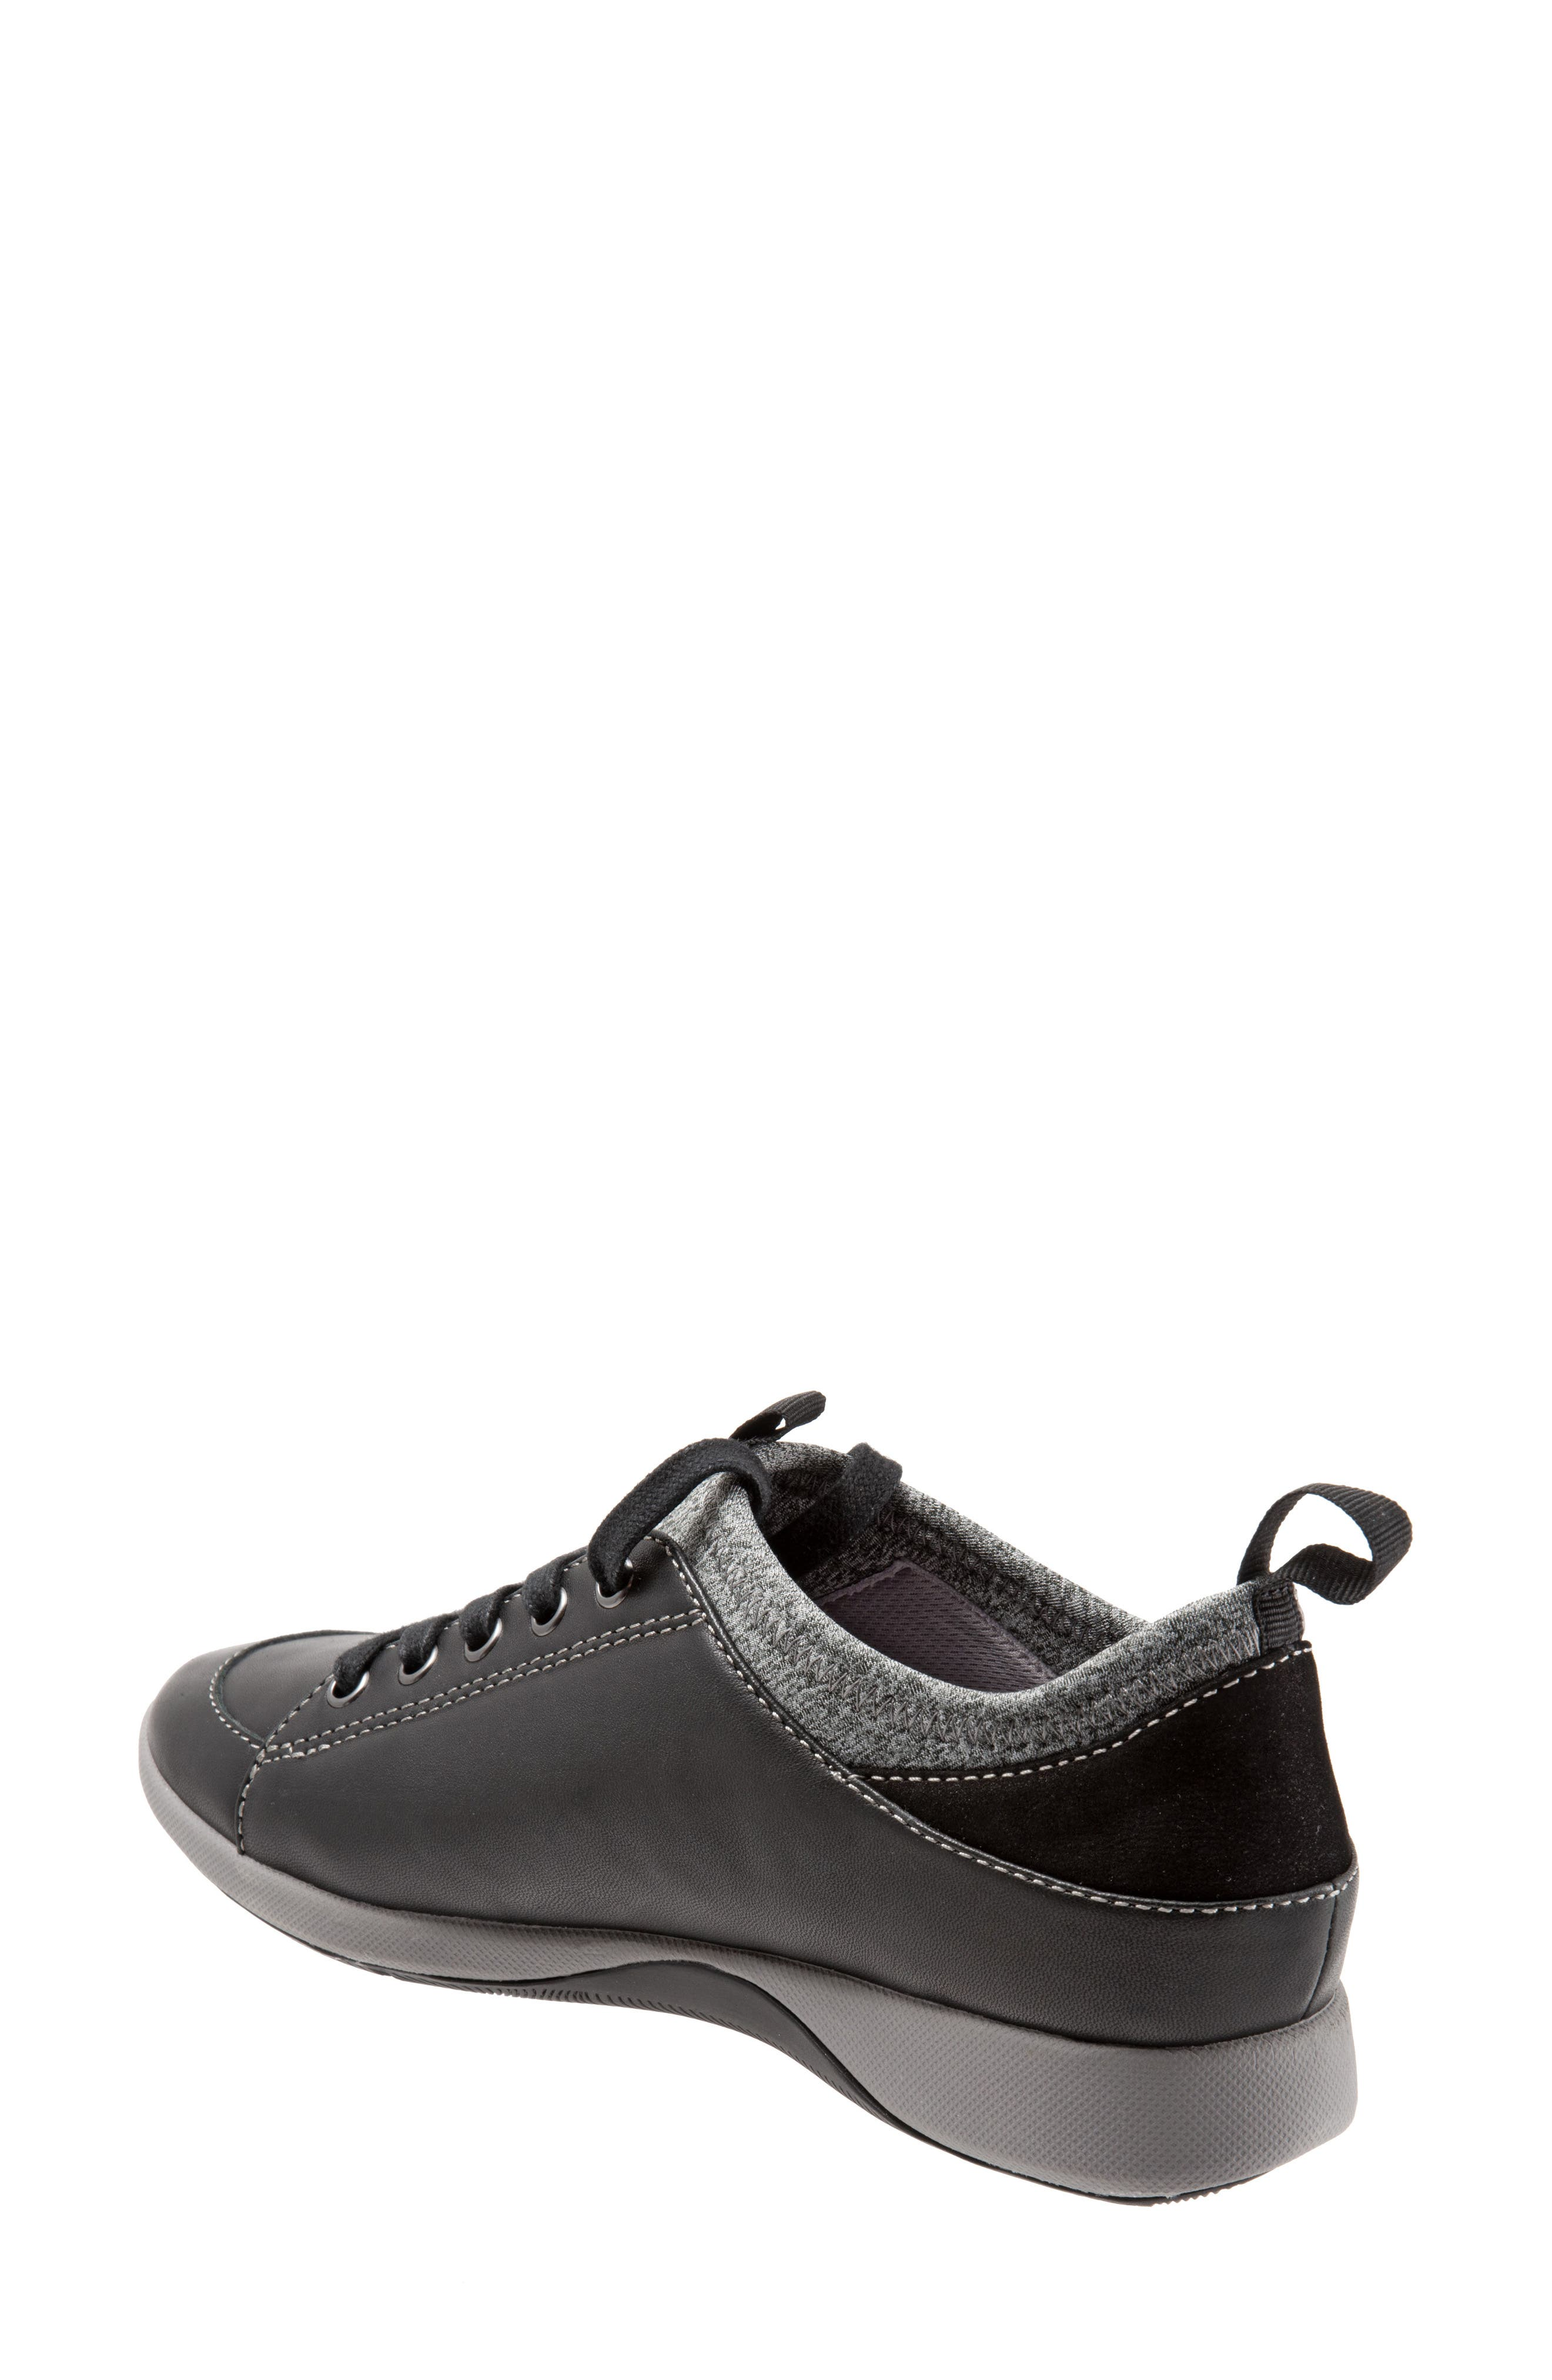 SAVA Haven Sneaker,                             Alternate thumbnail 2, color,                             BLACK/ GREY LEATHER